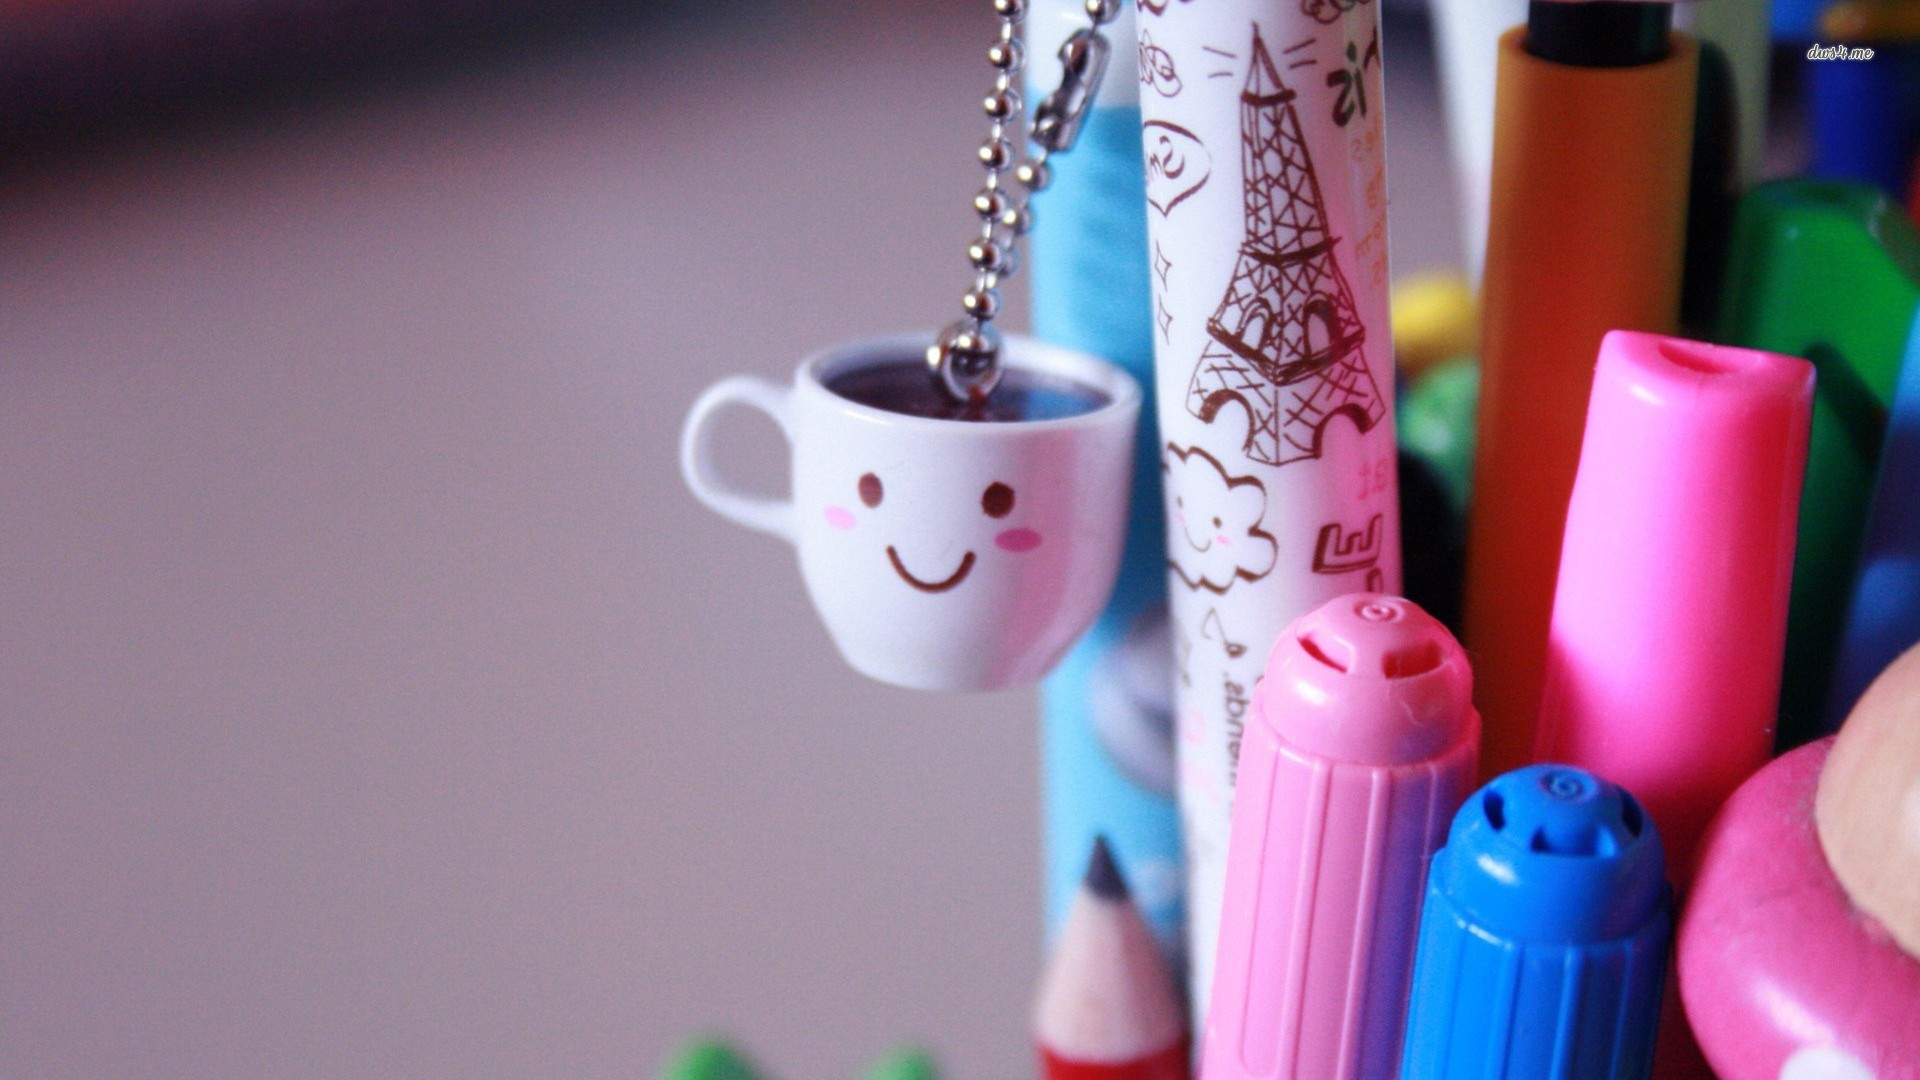 Coffee cup keychain wallpaper   Photography wallpapers   12522 1920x1080